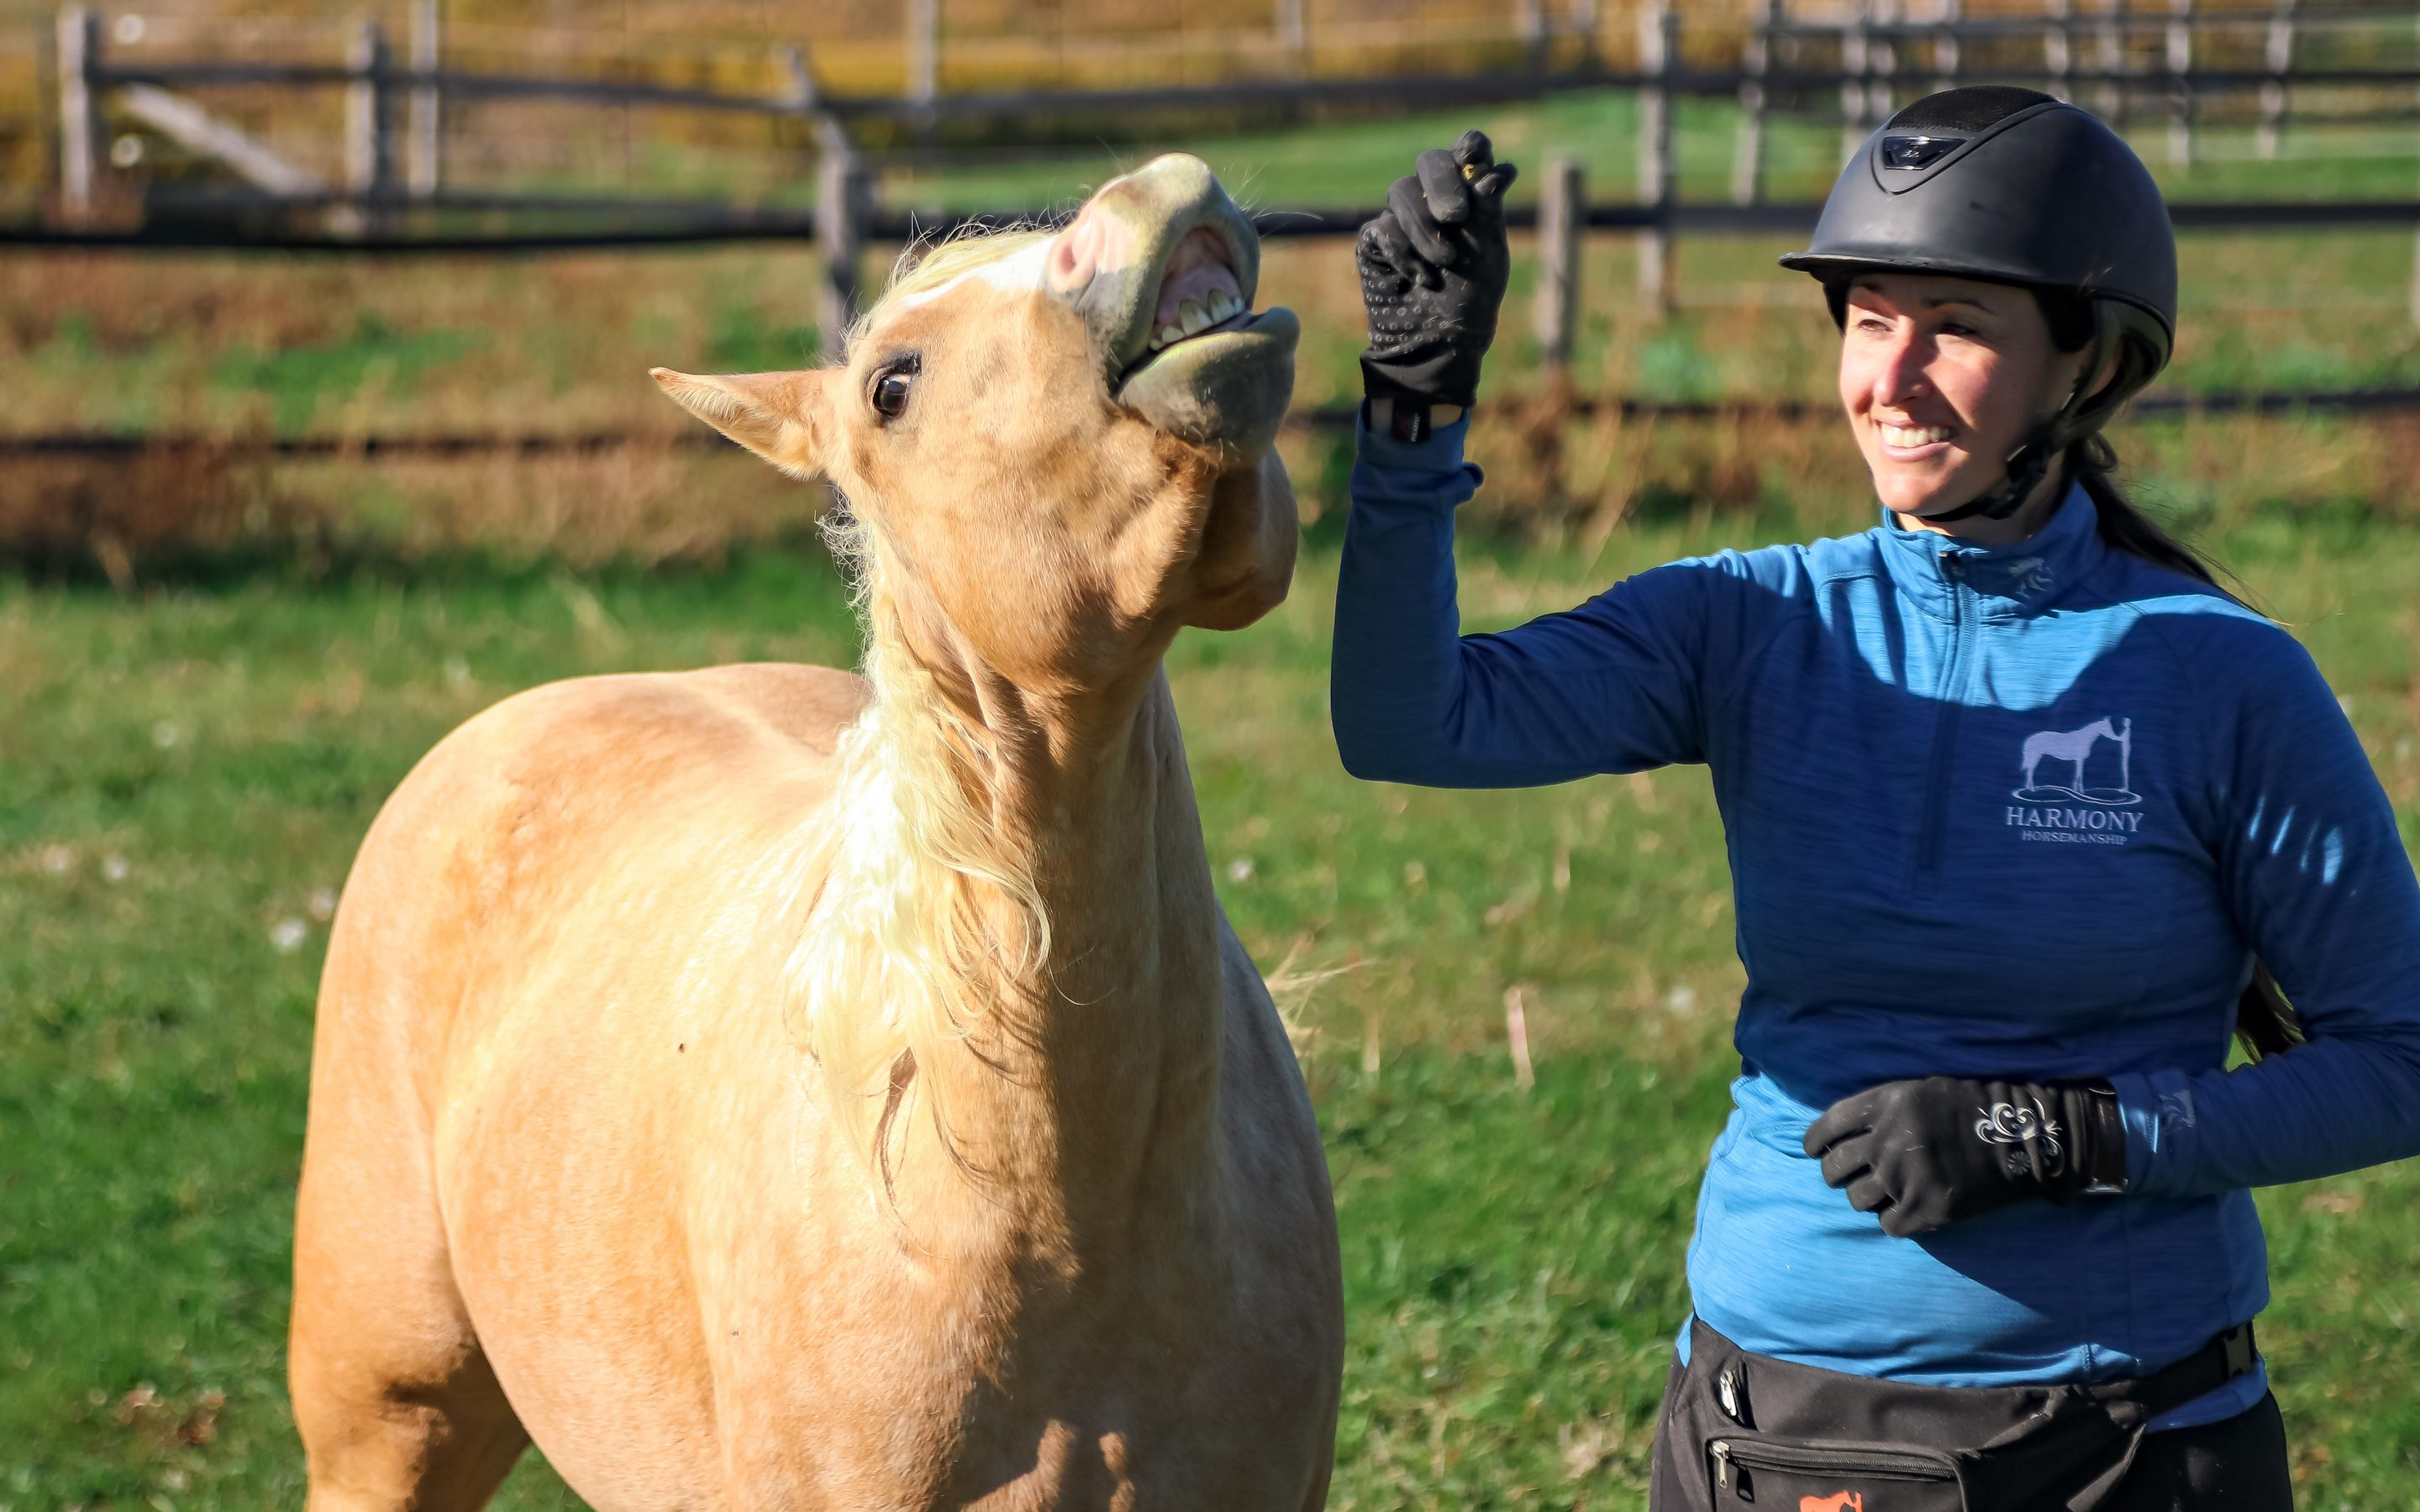 The Best Gifts for Equestrians and Horse Crazy Friends